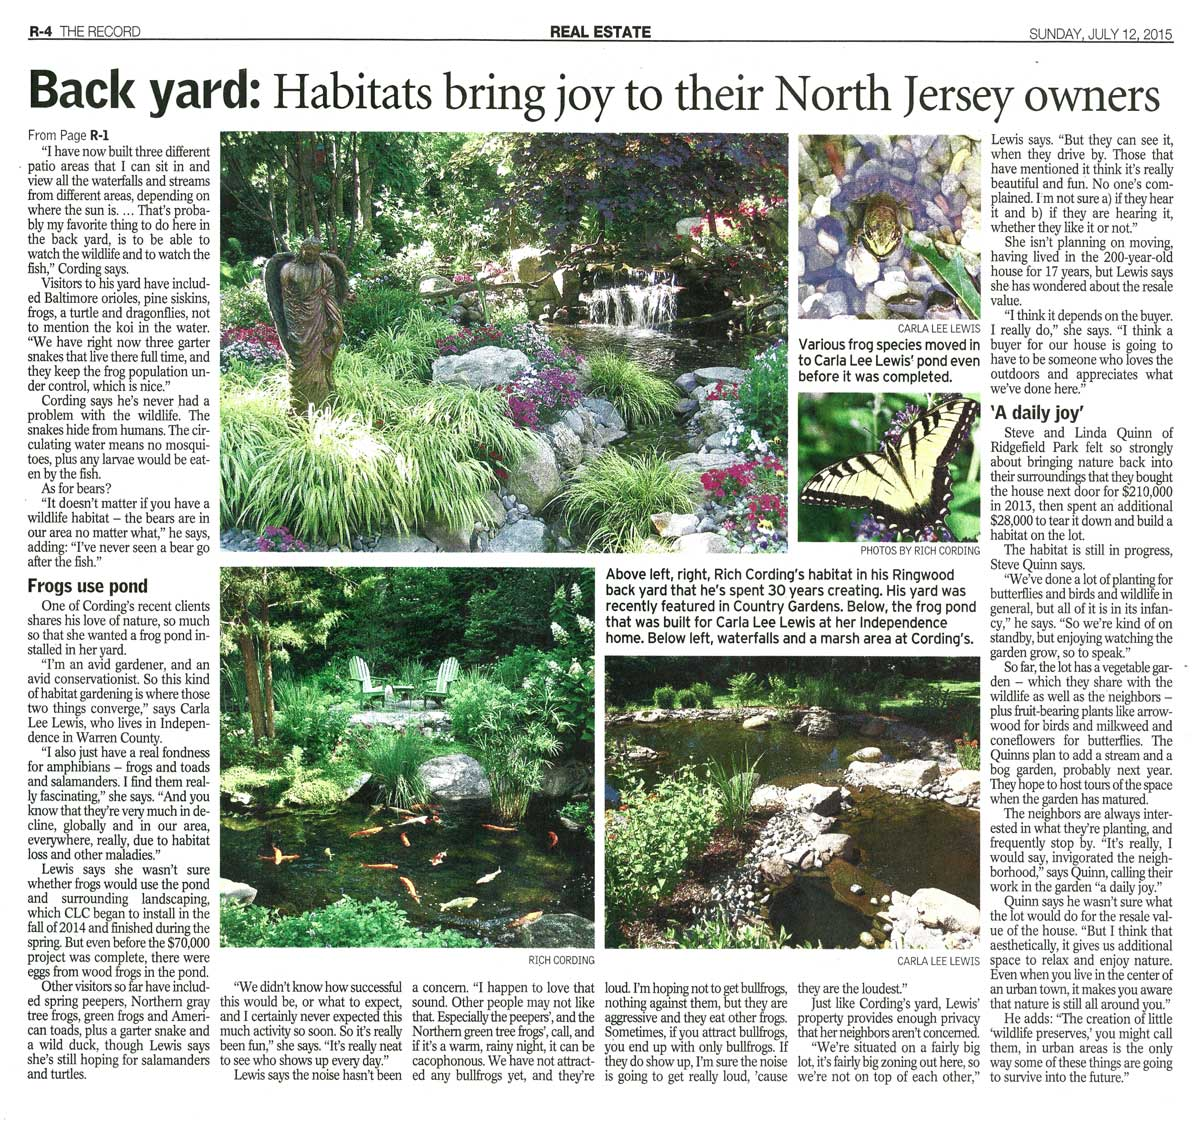 Article in The Record about Backyard Habitats - Page 2